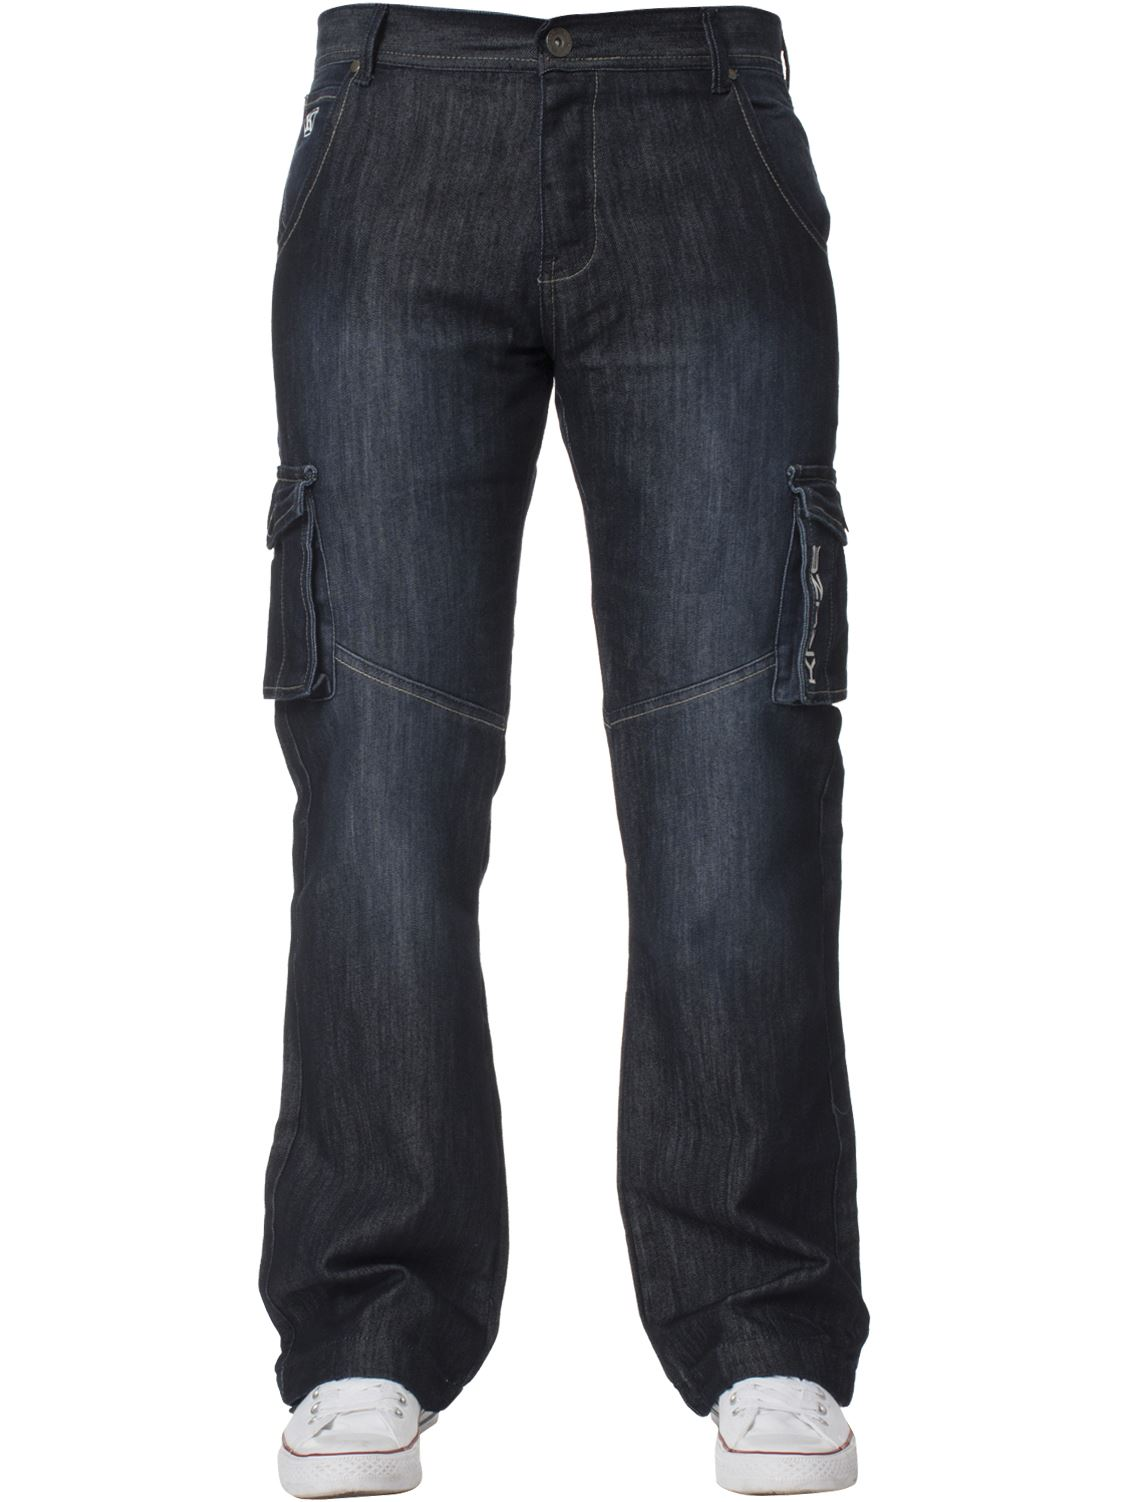 Mens-Cargo-Jeans-Combat-Trousers-Heavy-Duty-Work-Casual-Big-Tall-Denim-Pants thumbnail 68